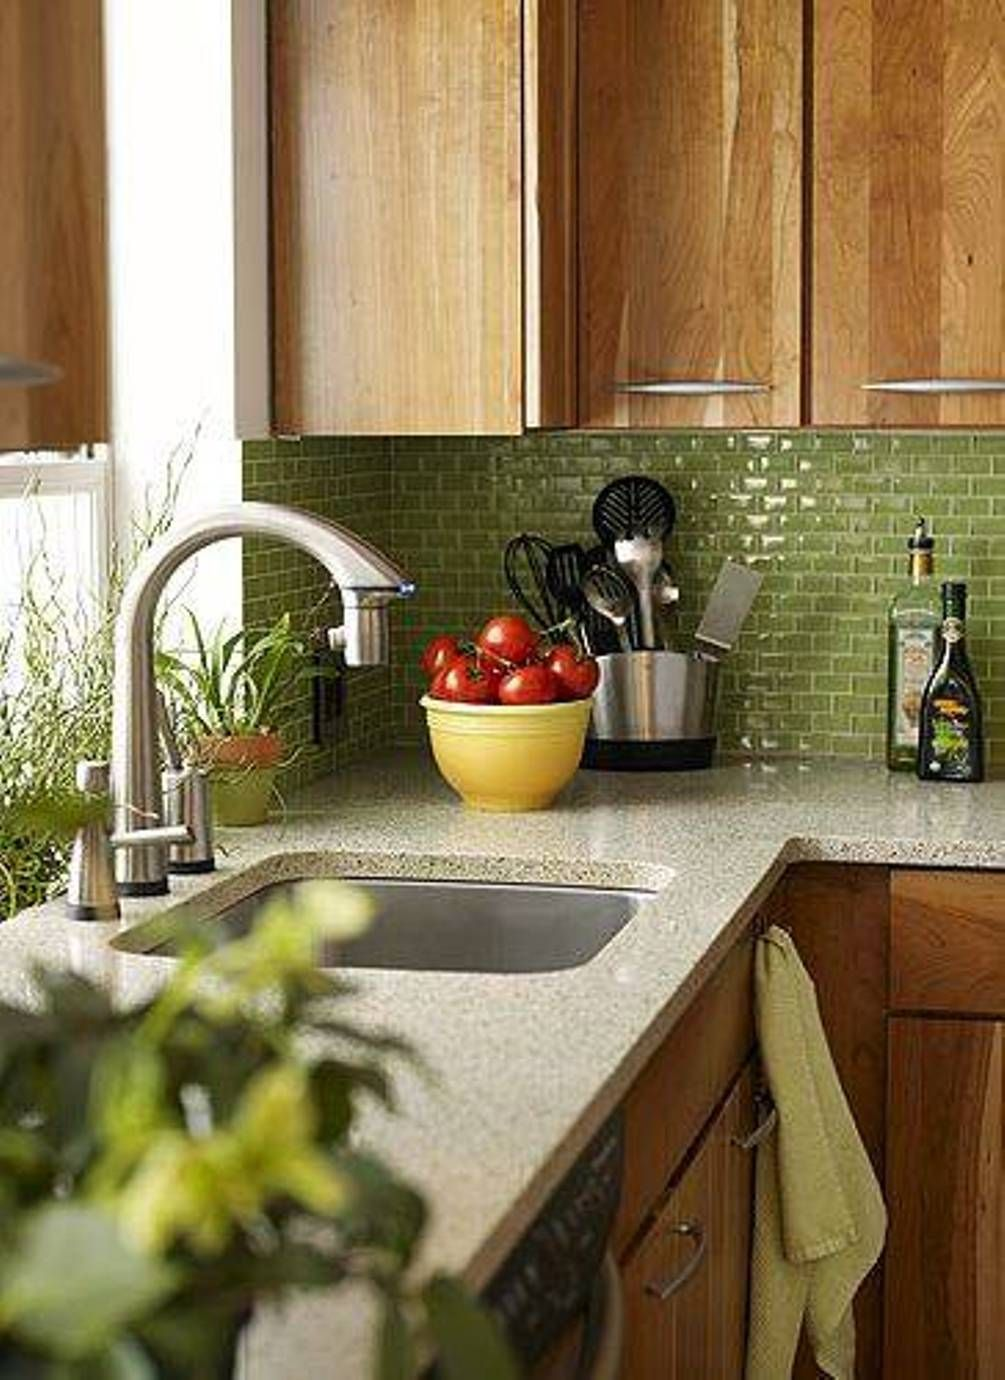 Kitchen green kitchen tiles for backsplash green kitchen tiles kitchen green kitchen tiles for backsplash green kitchen tiles backsplash with wooden cabinets and dailygadgetfo Image collections